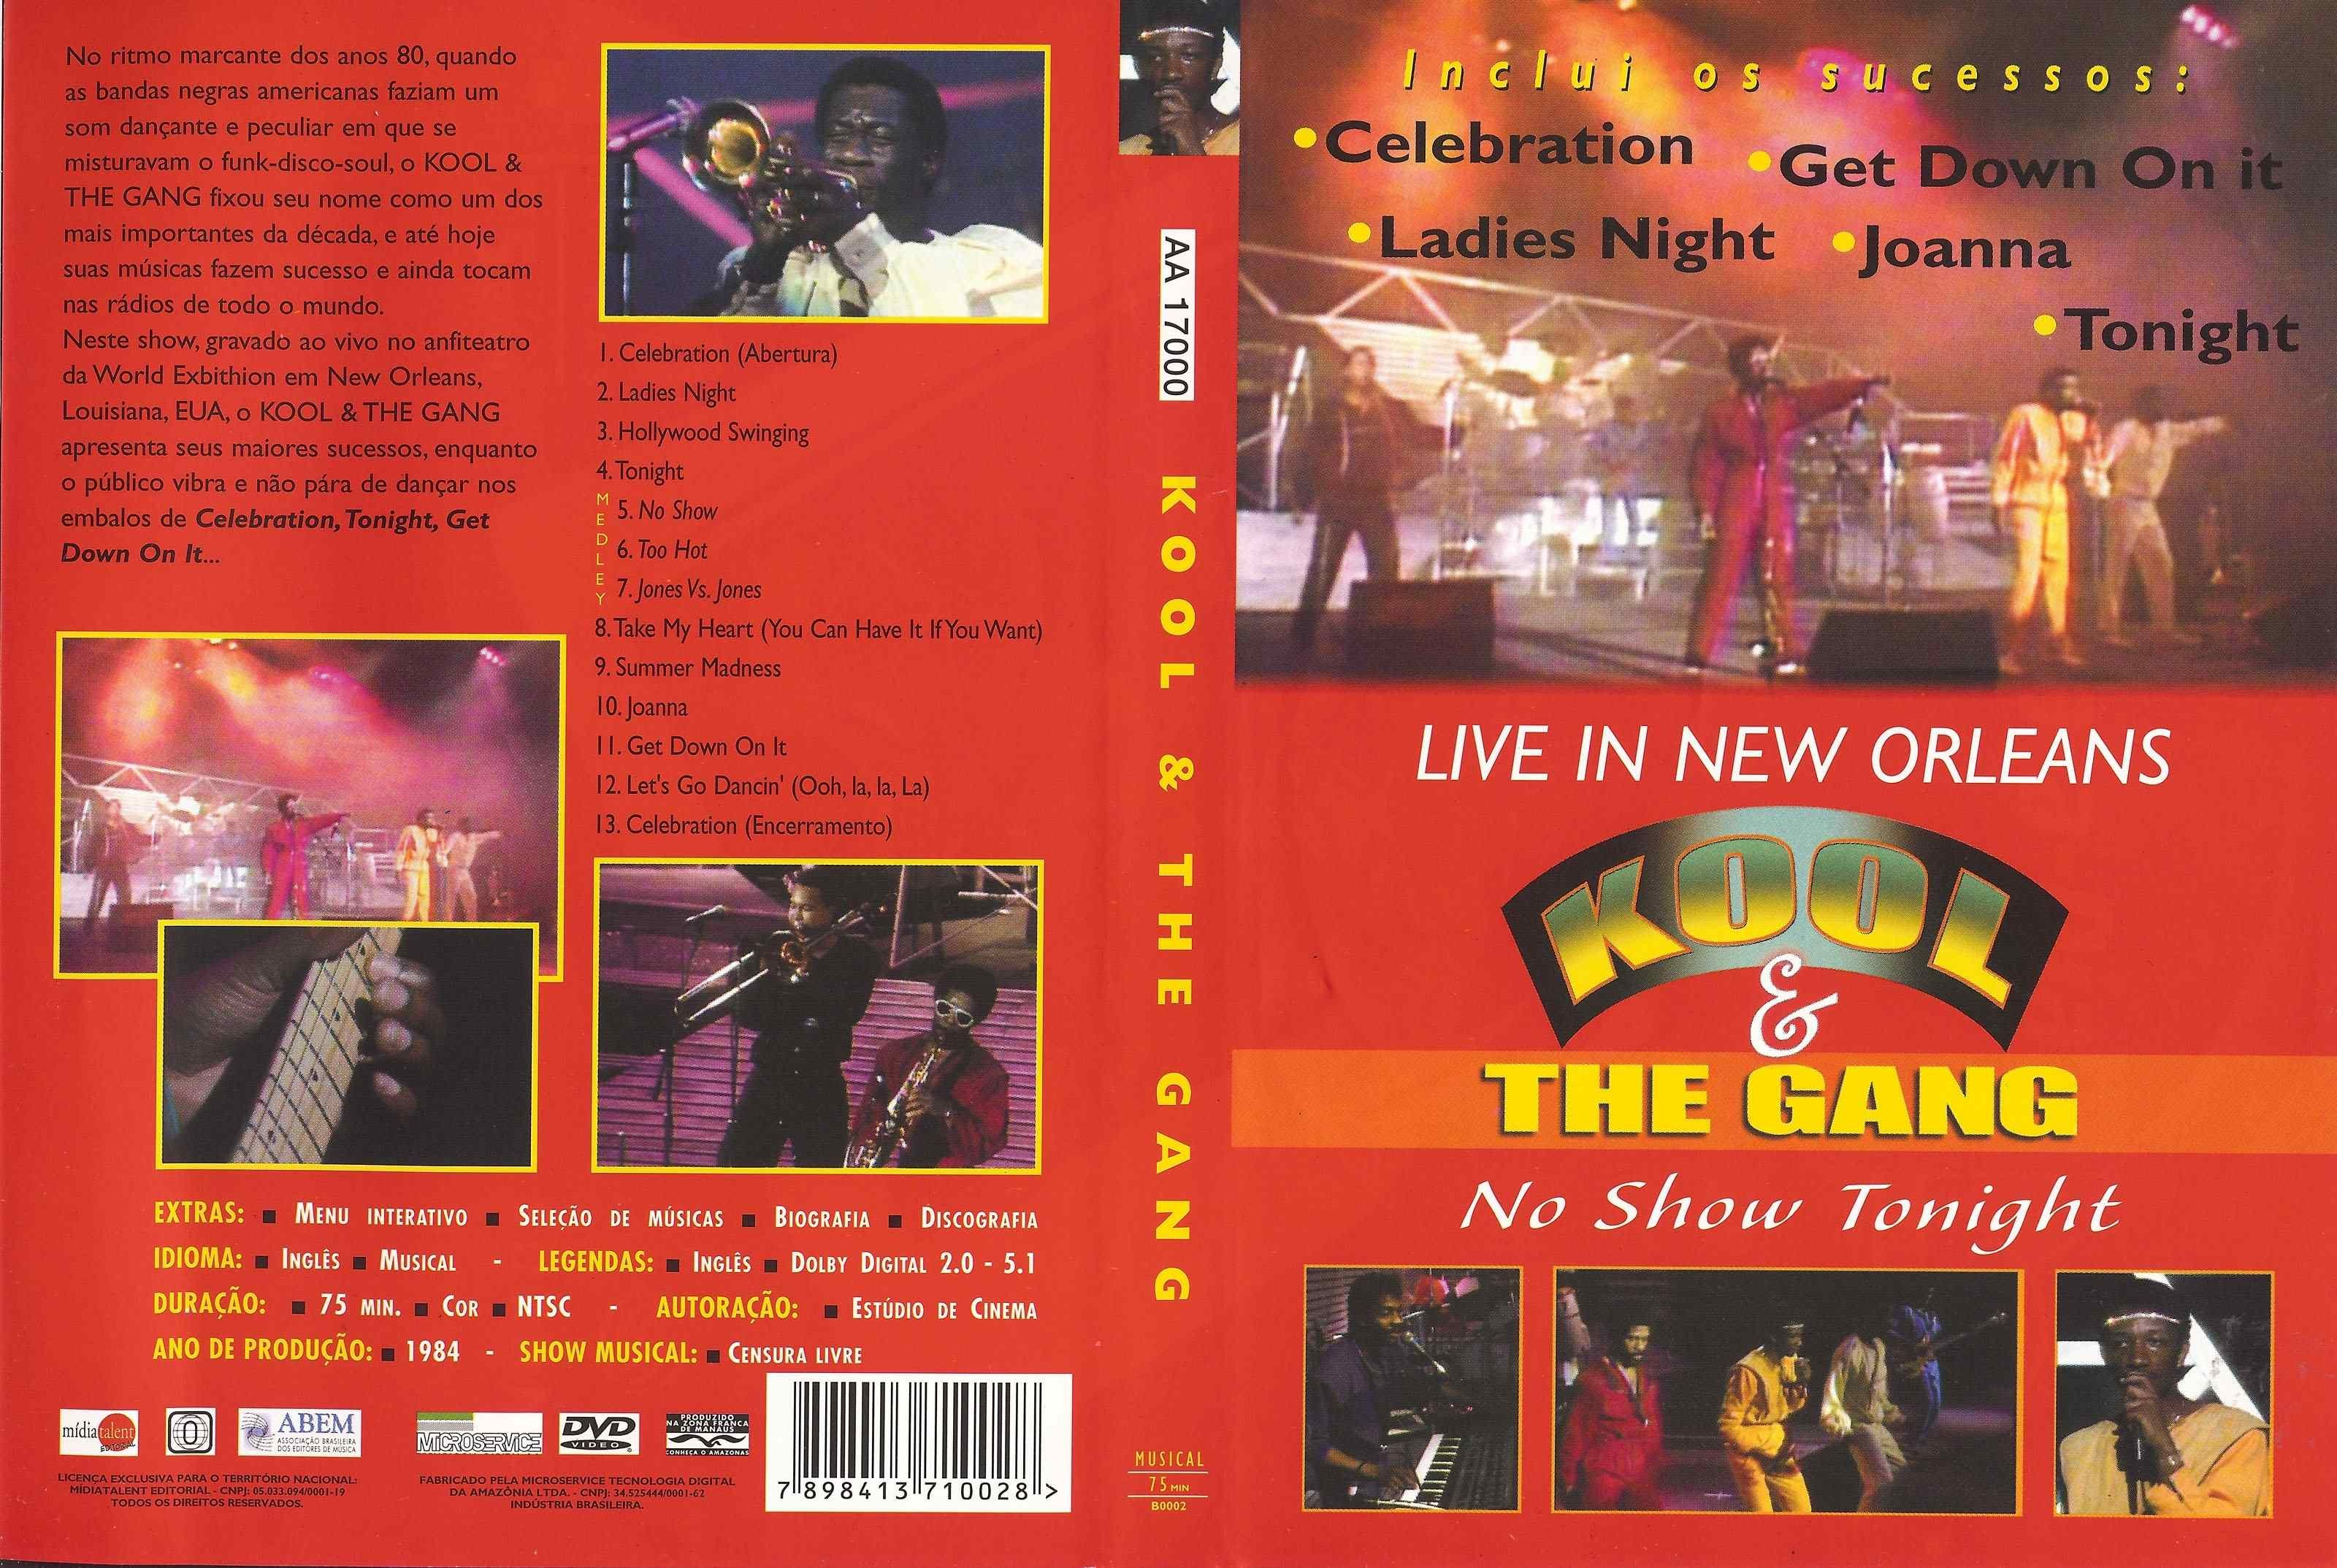 DVD LACRADO KOOL & THE GANG SHOW TONIGHT LIVE IN NEW ORLEANS